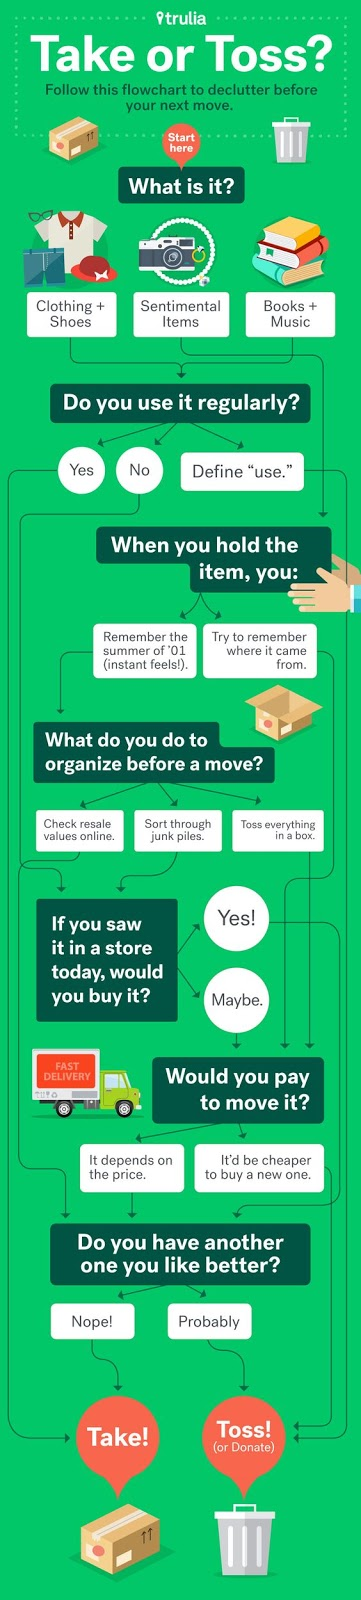 Tips for Moving: Do you Take or Toss?